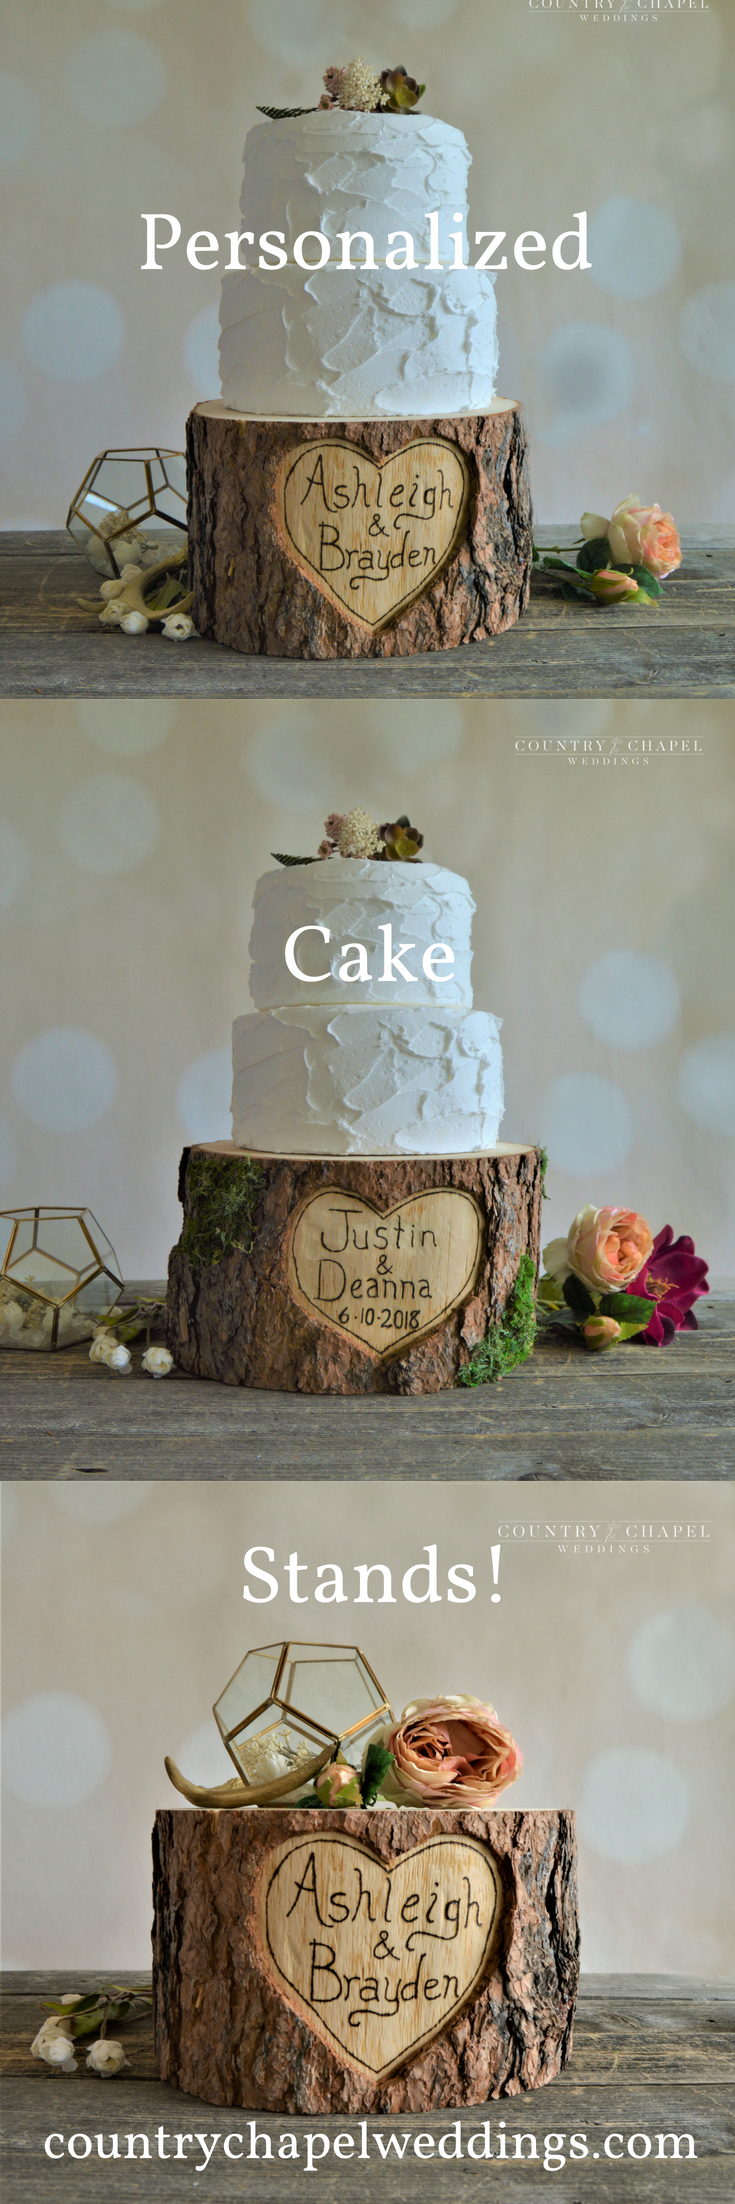 Personalized heart in tree cake stand wedding centerpiece